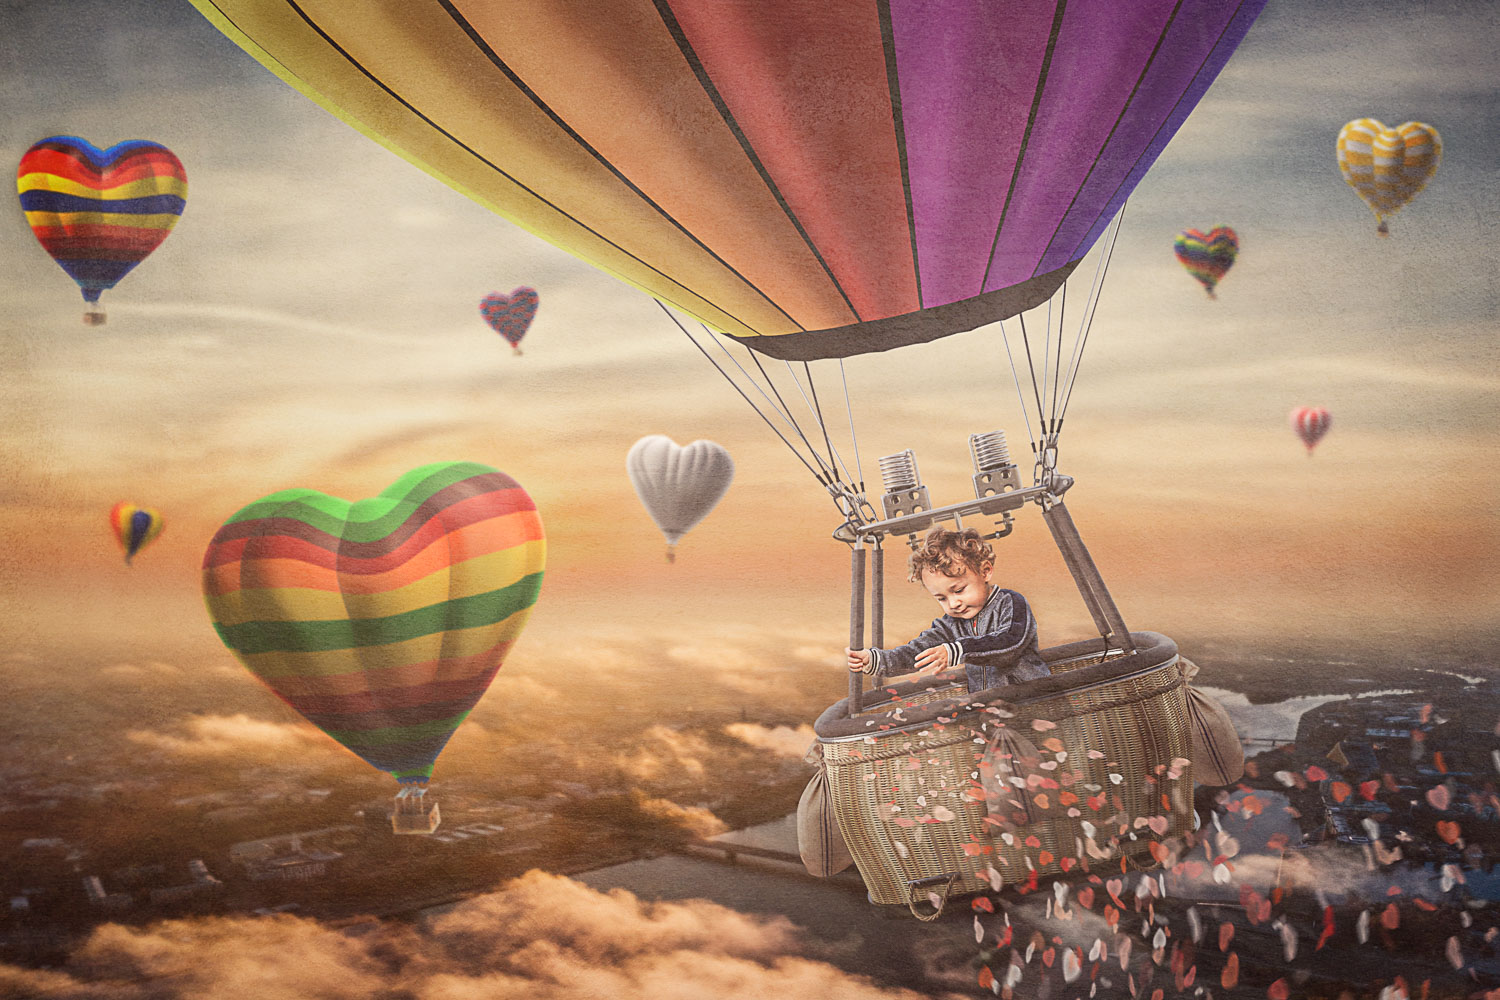 little boy spreading some love from his hot air ballon ride storybook composite